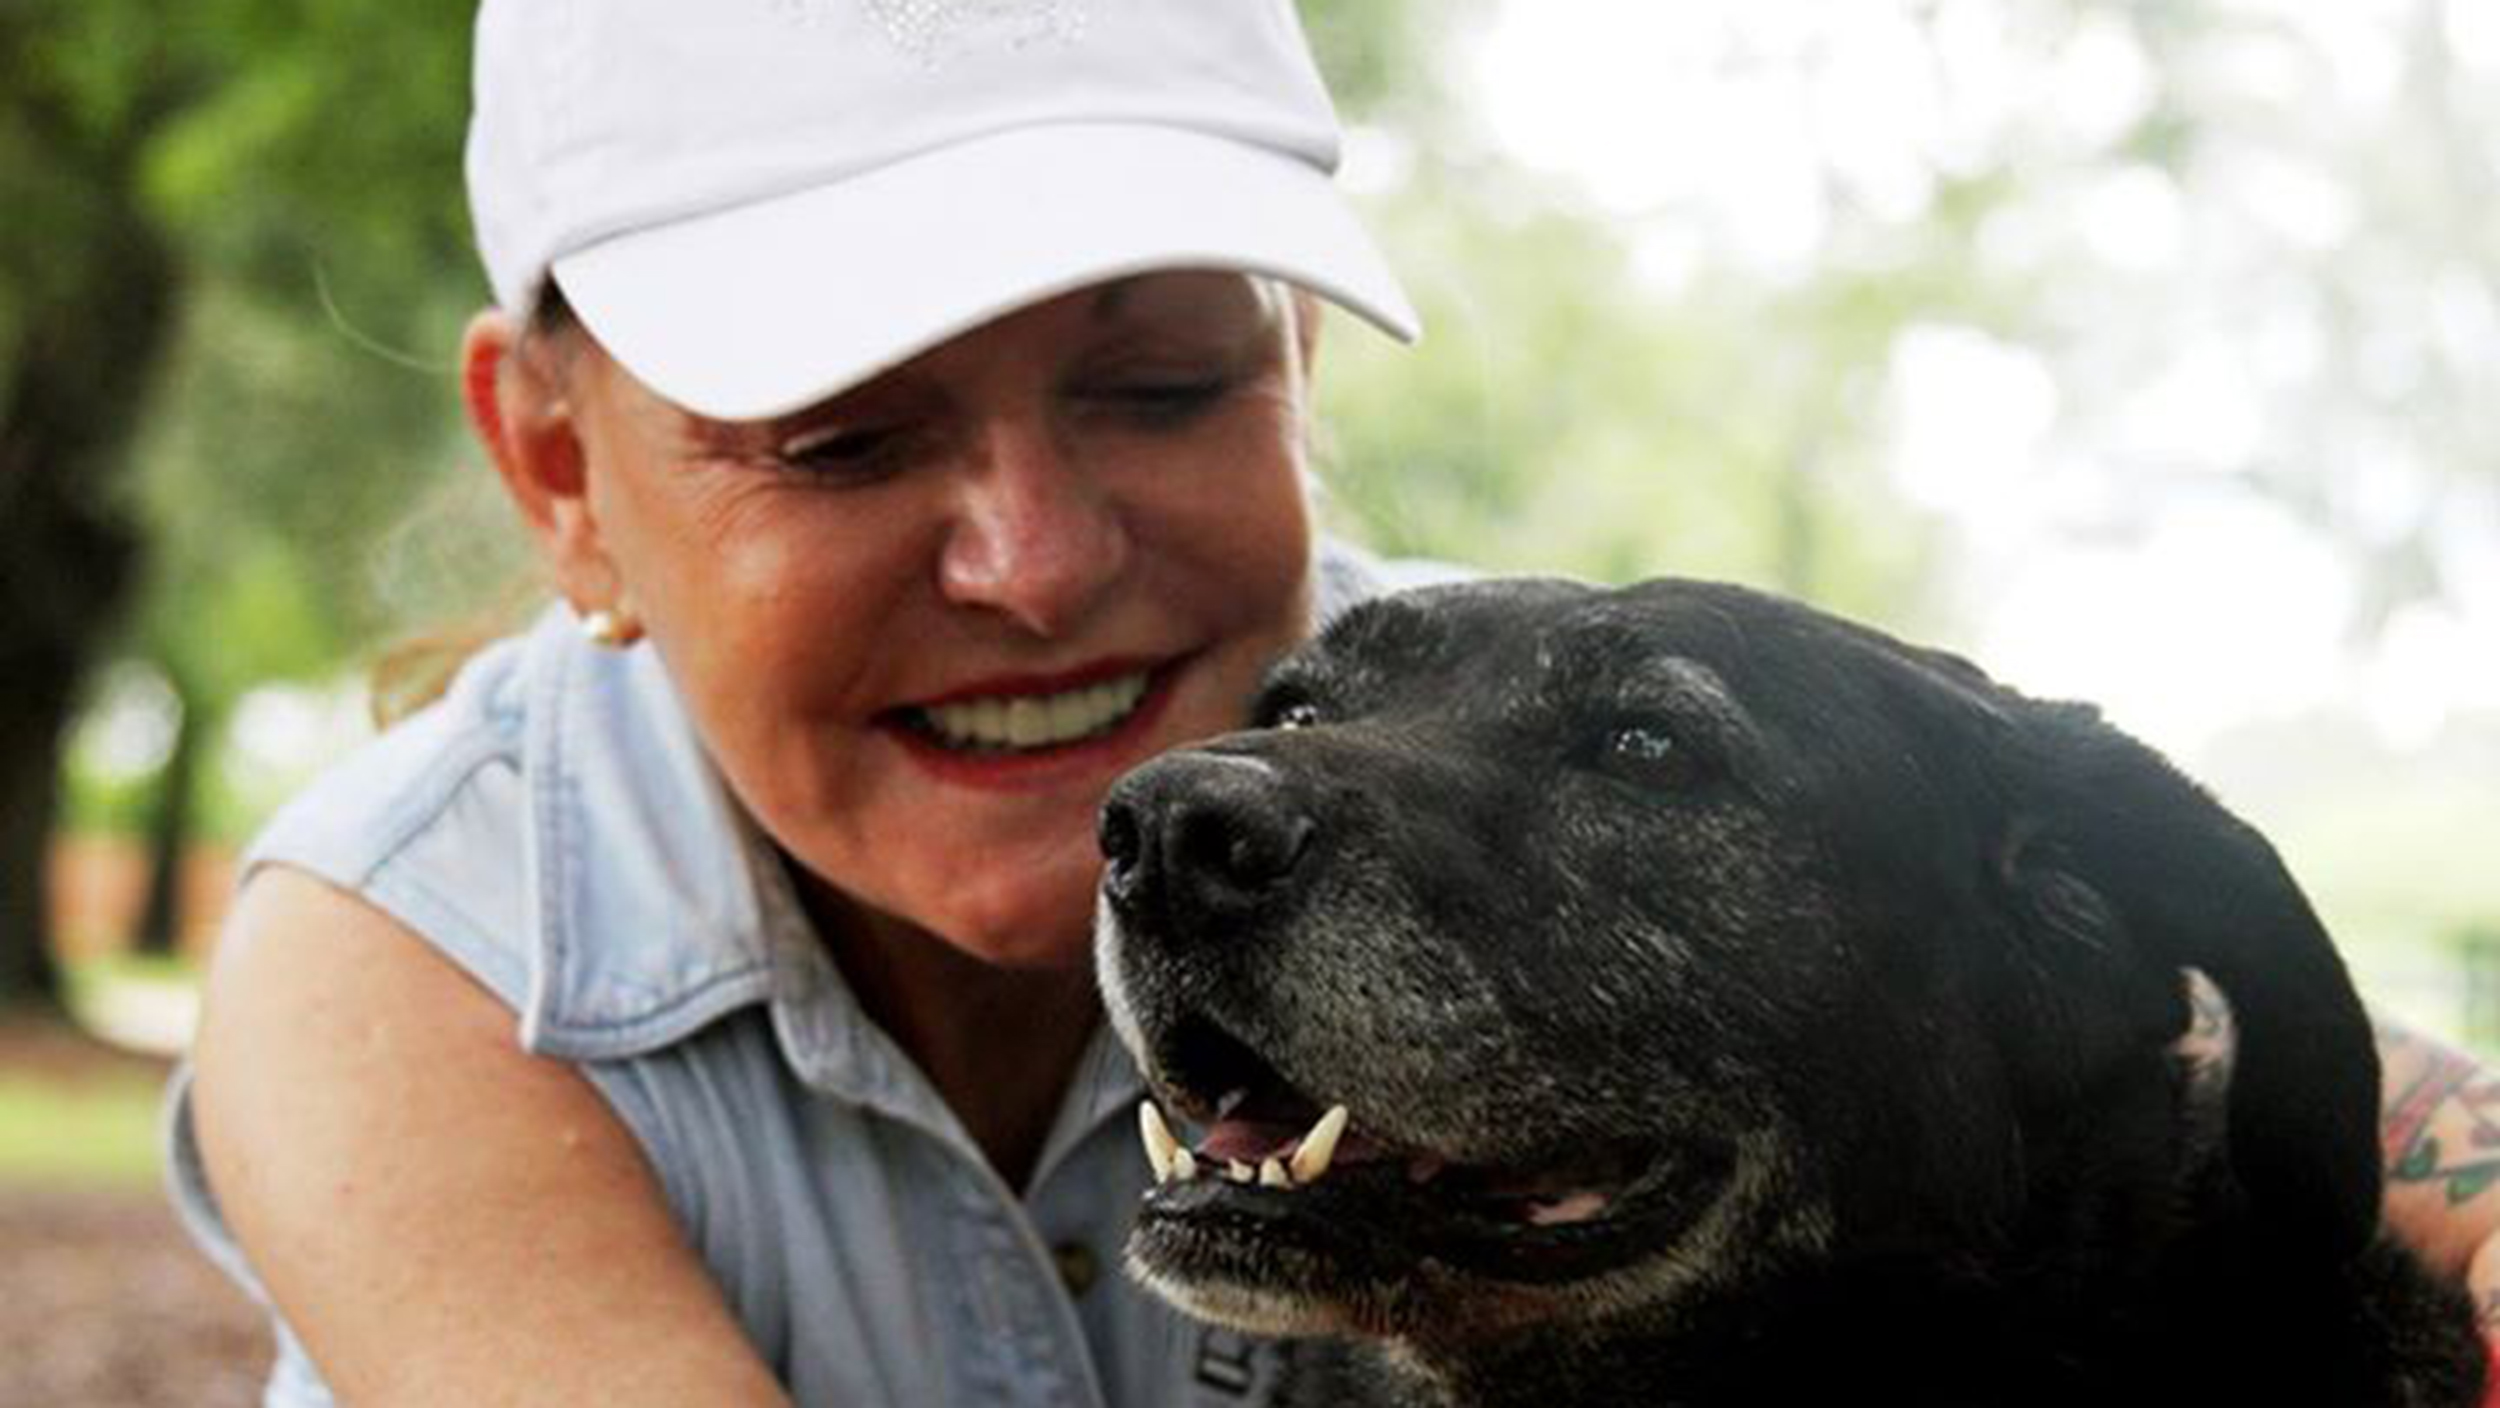 first class  heiress gives abandoned shelter dog a jet-set rescue